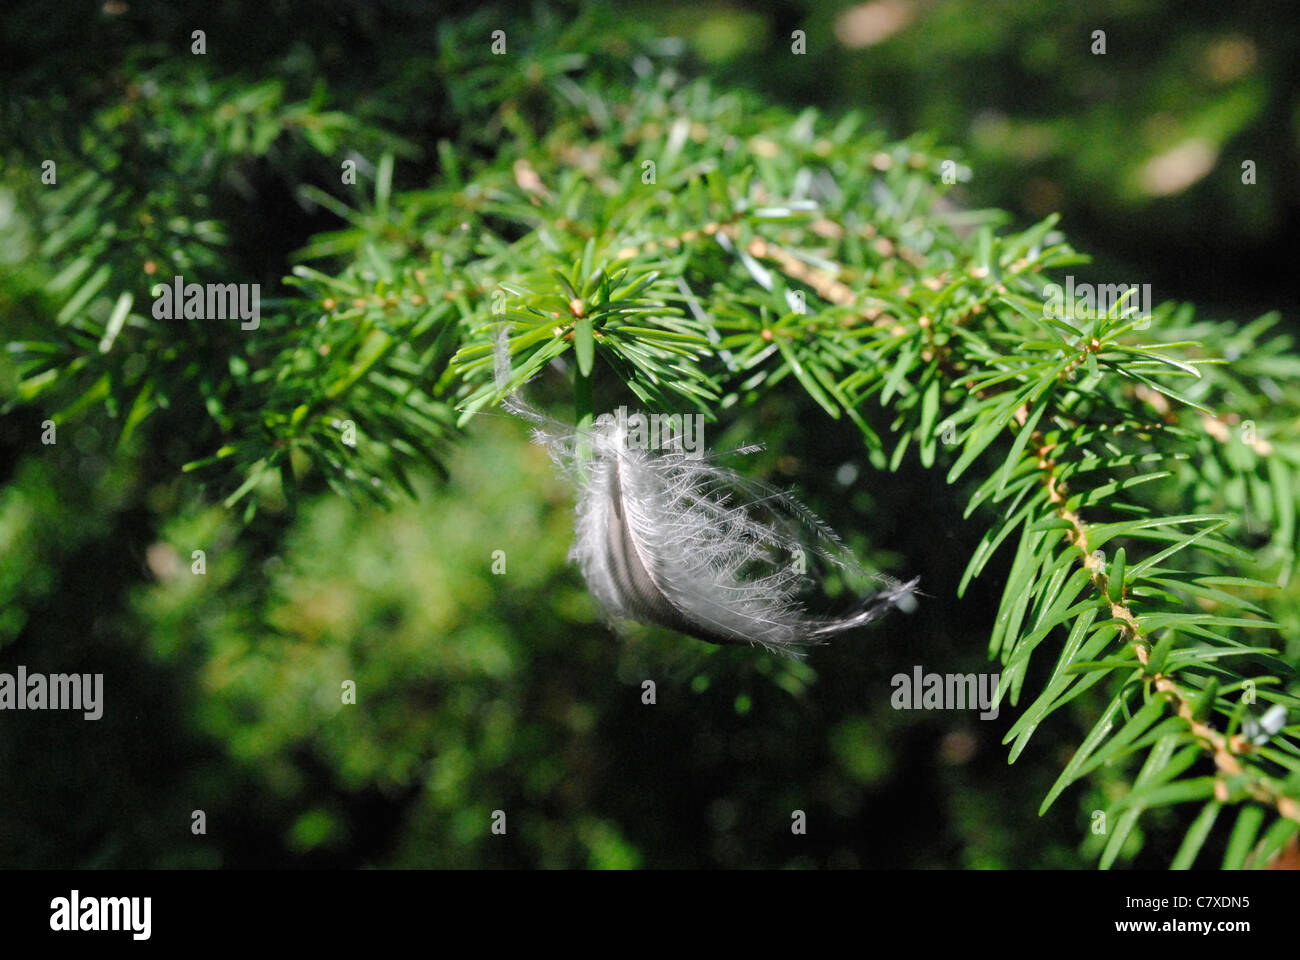 Feather caught in Yew Tree - Stock Image